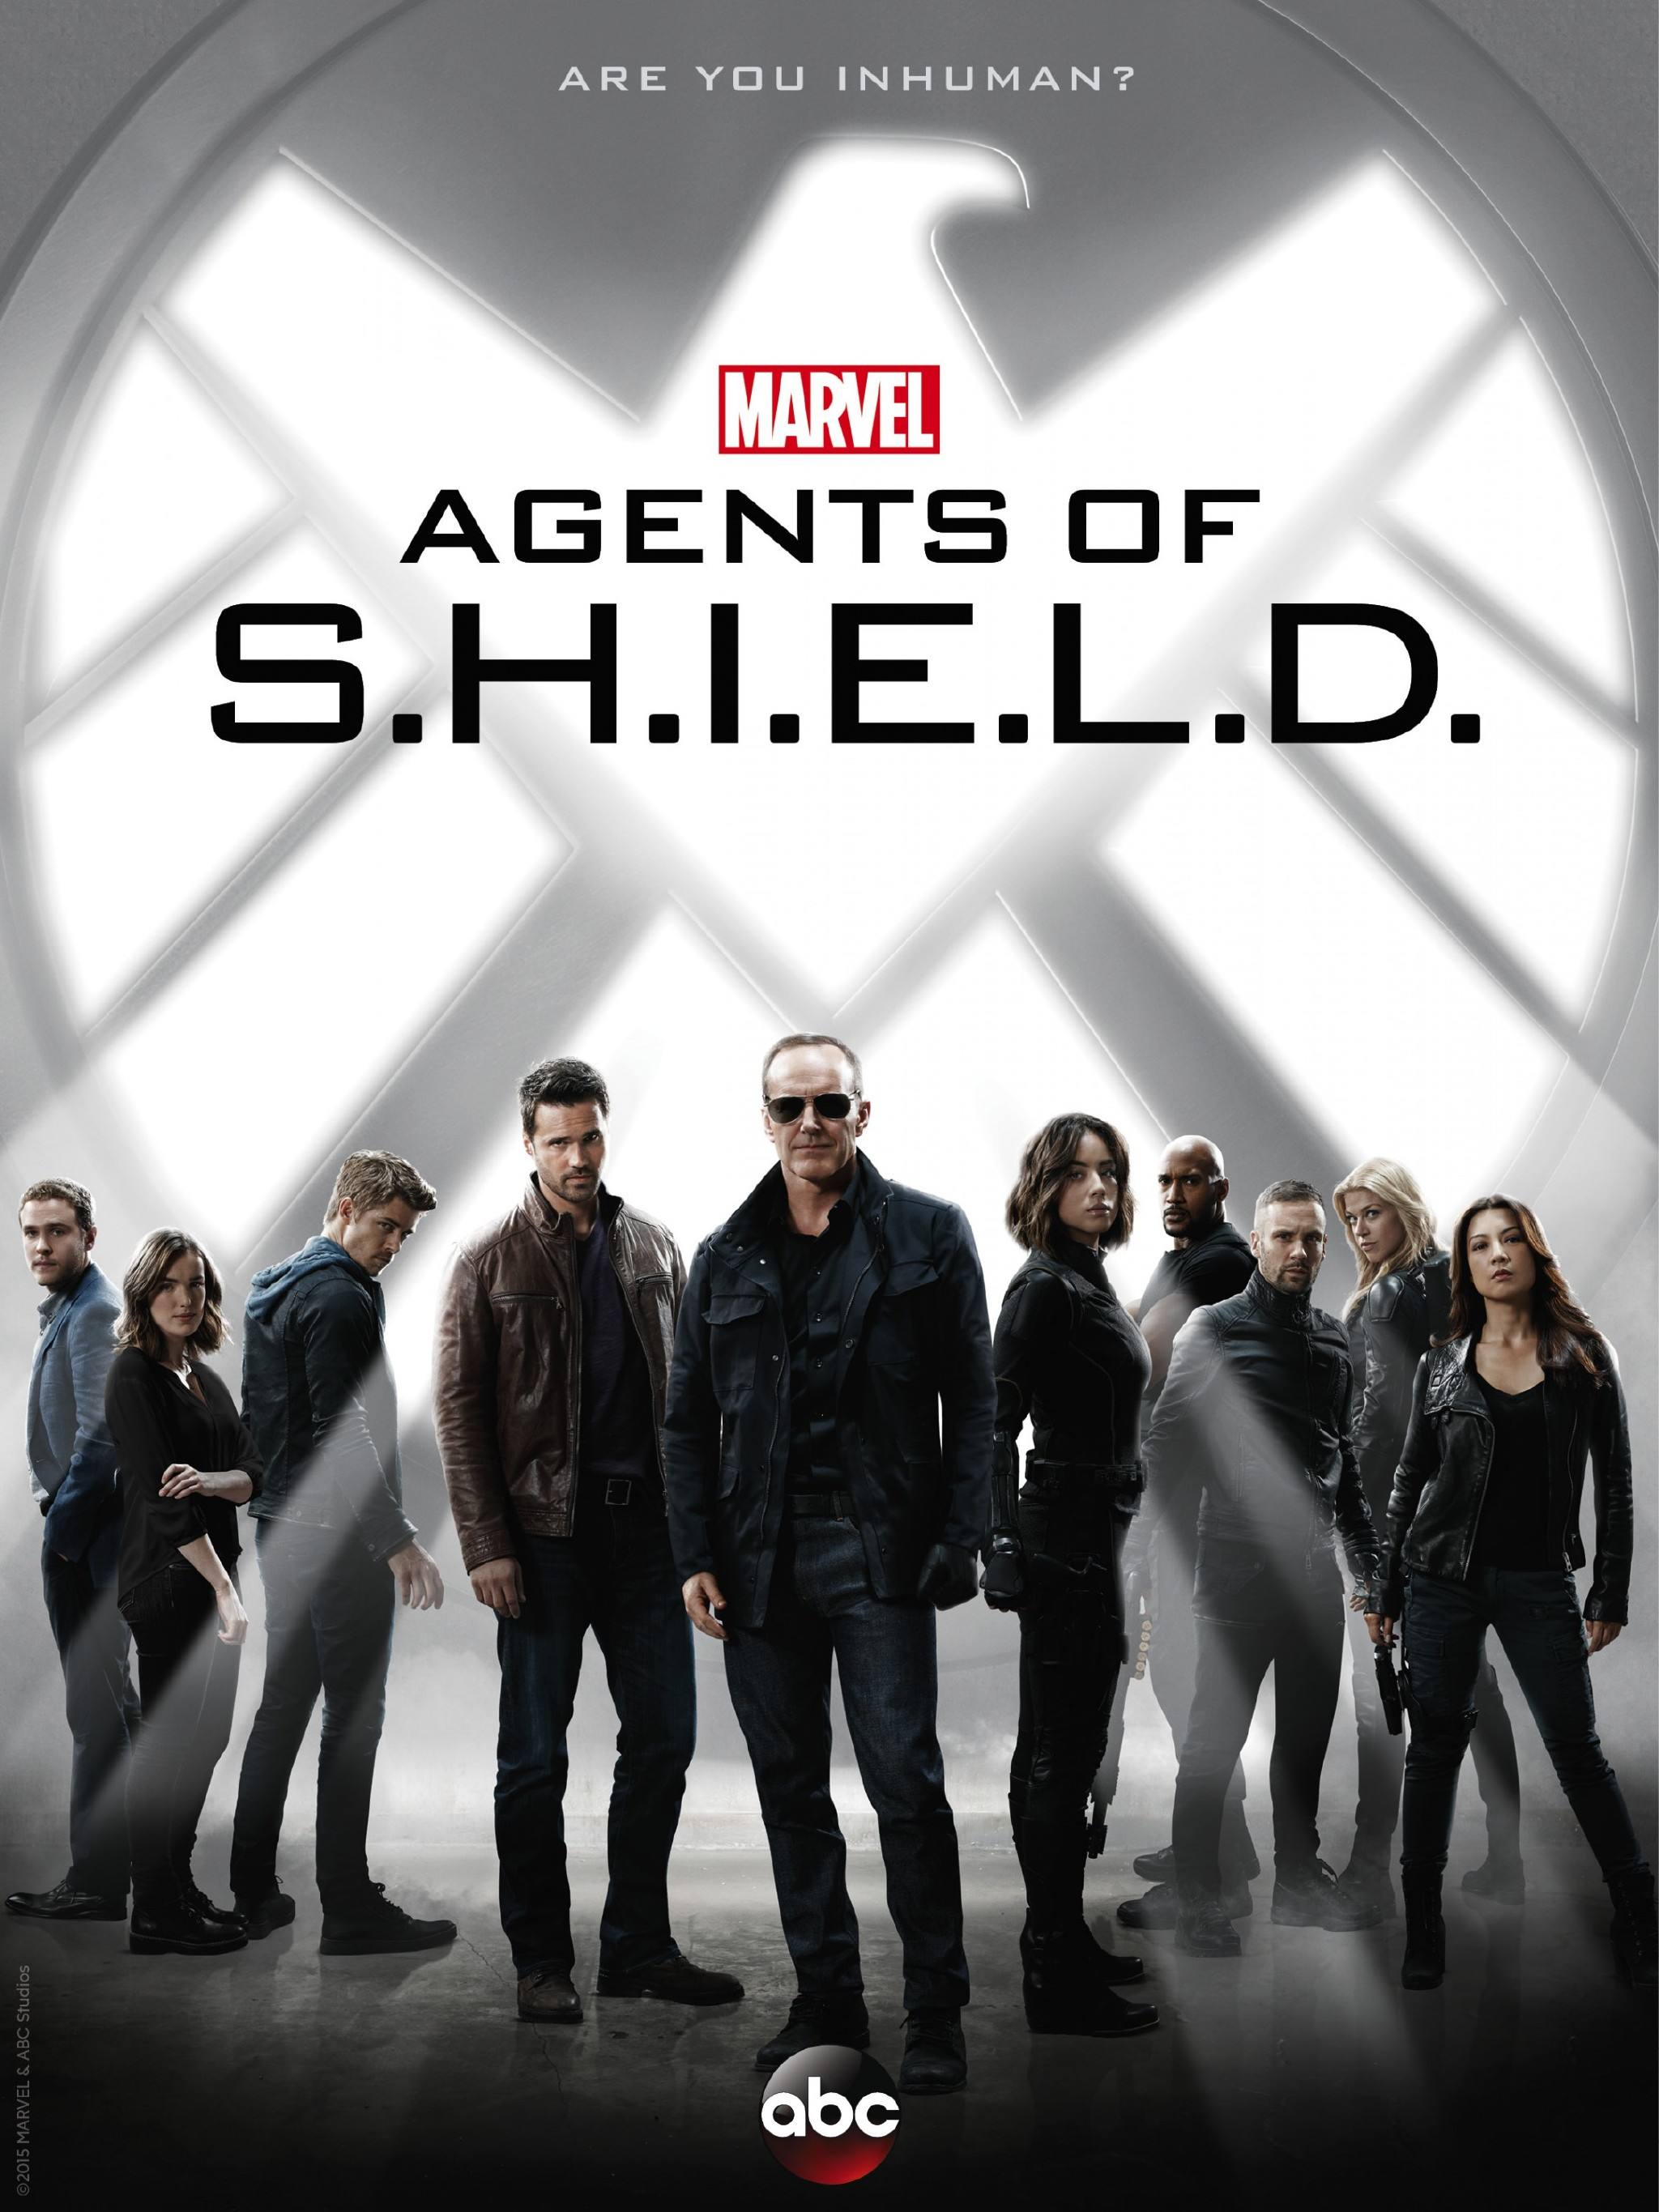 神盾局特工 第六季 神盾局特工 1-5季  完结22 Agents of S.H.I.E.L.D. Season 4 (2016)